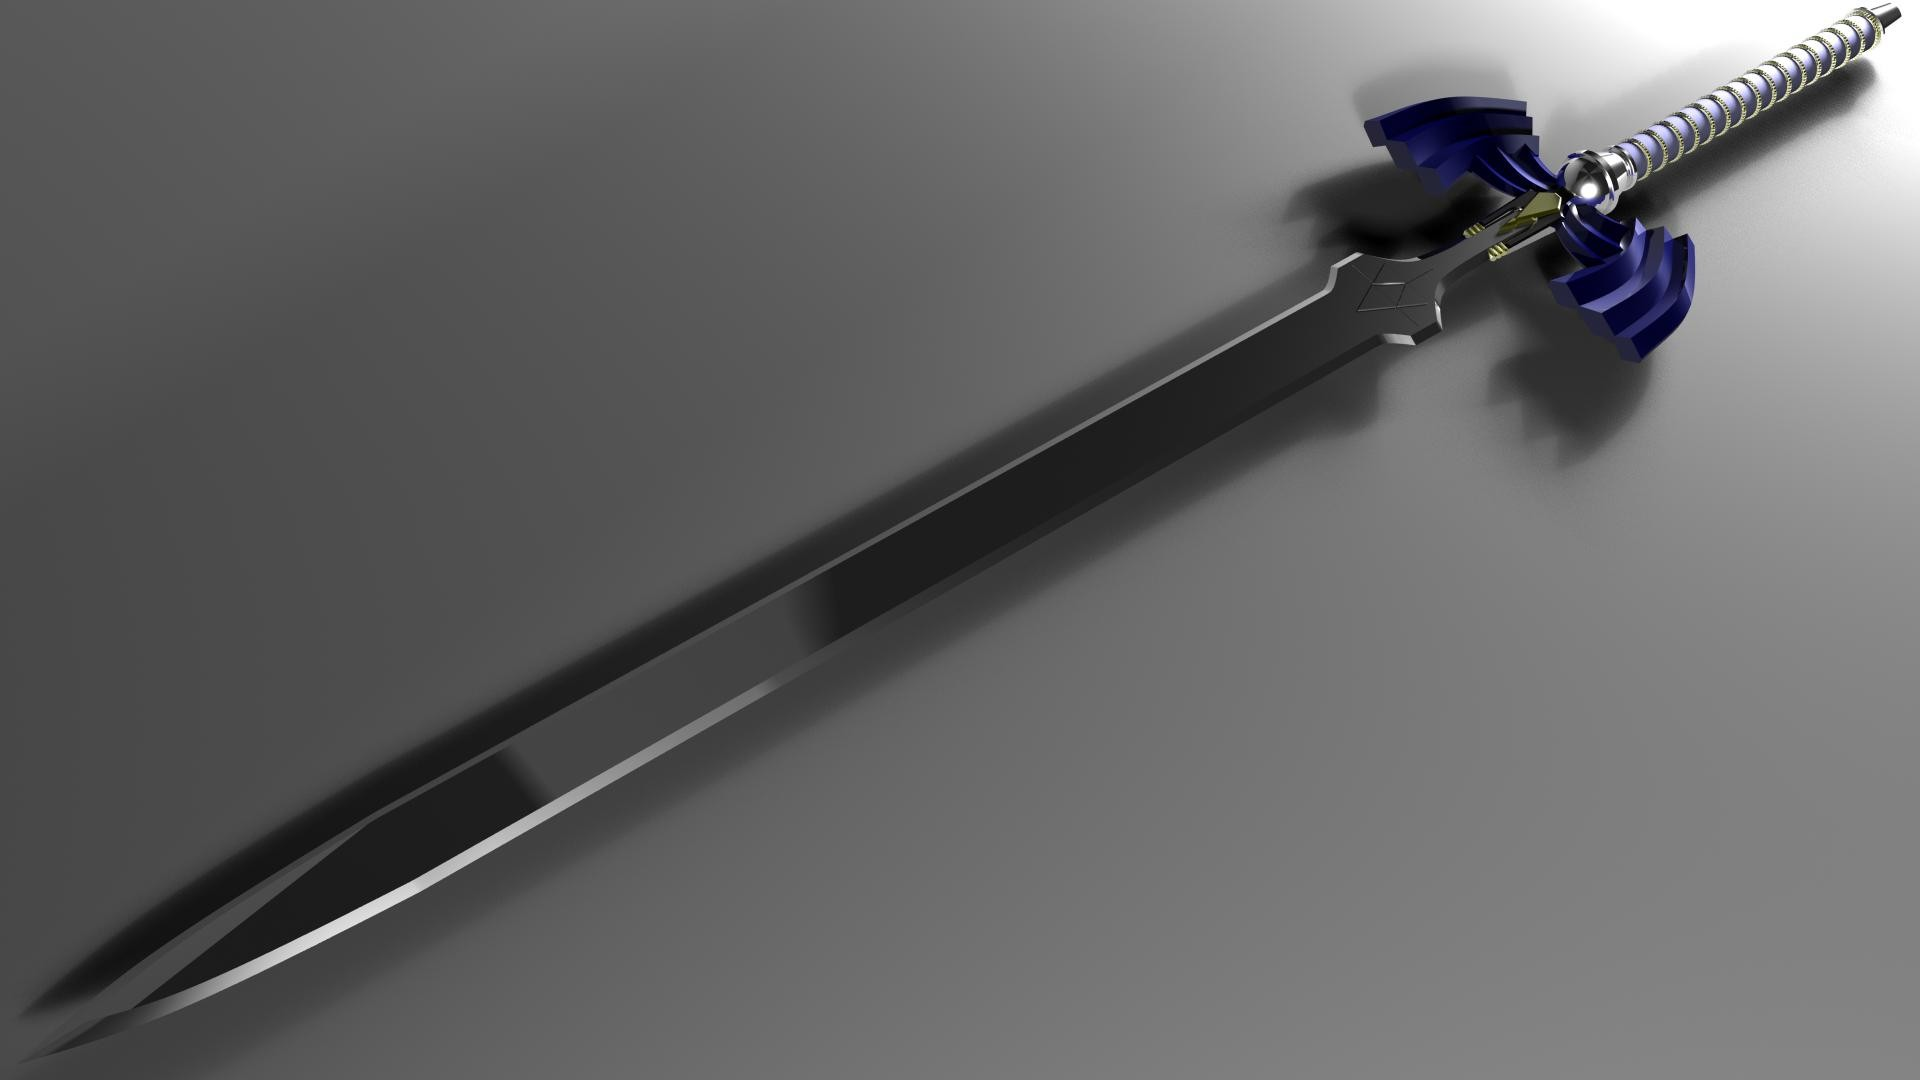 3d Sword Games Hd Wallpaper For Mobile: Sword Wallpaper ·① Download Free Awesome Backgrounds For